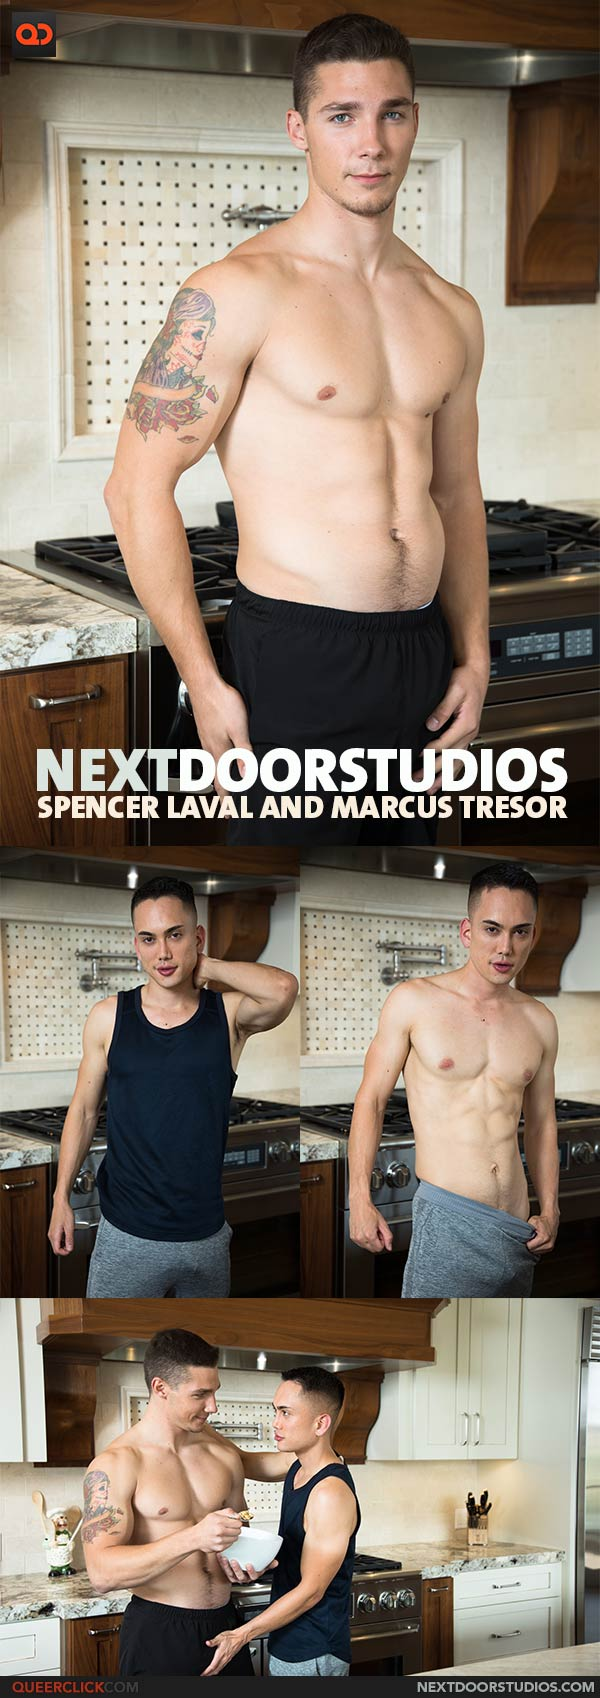 Next Door Studios:  Spencer Laval and Marcus Tresor